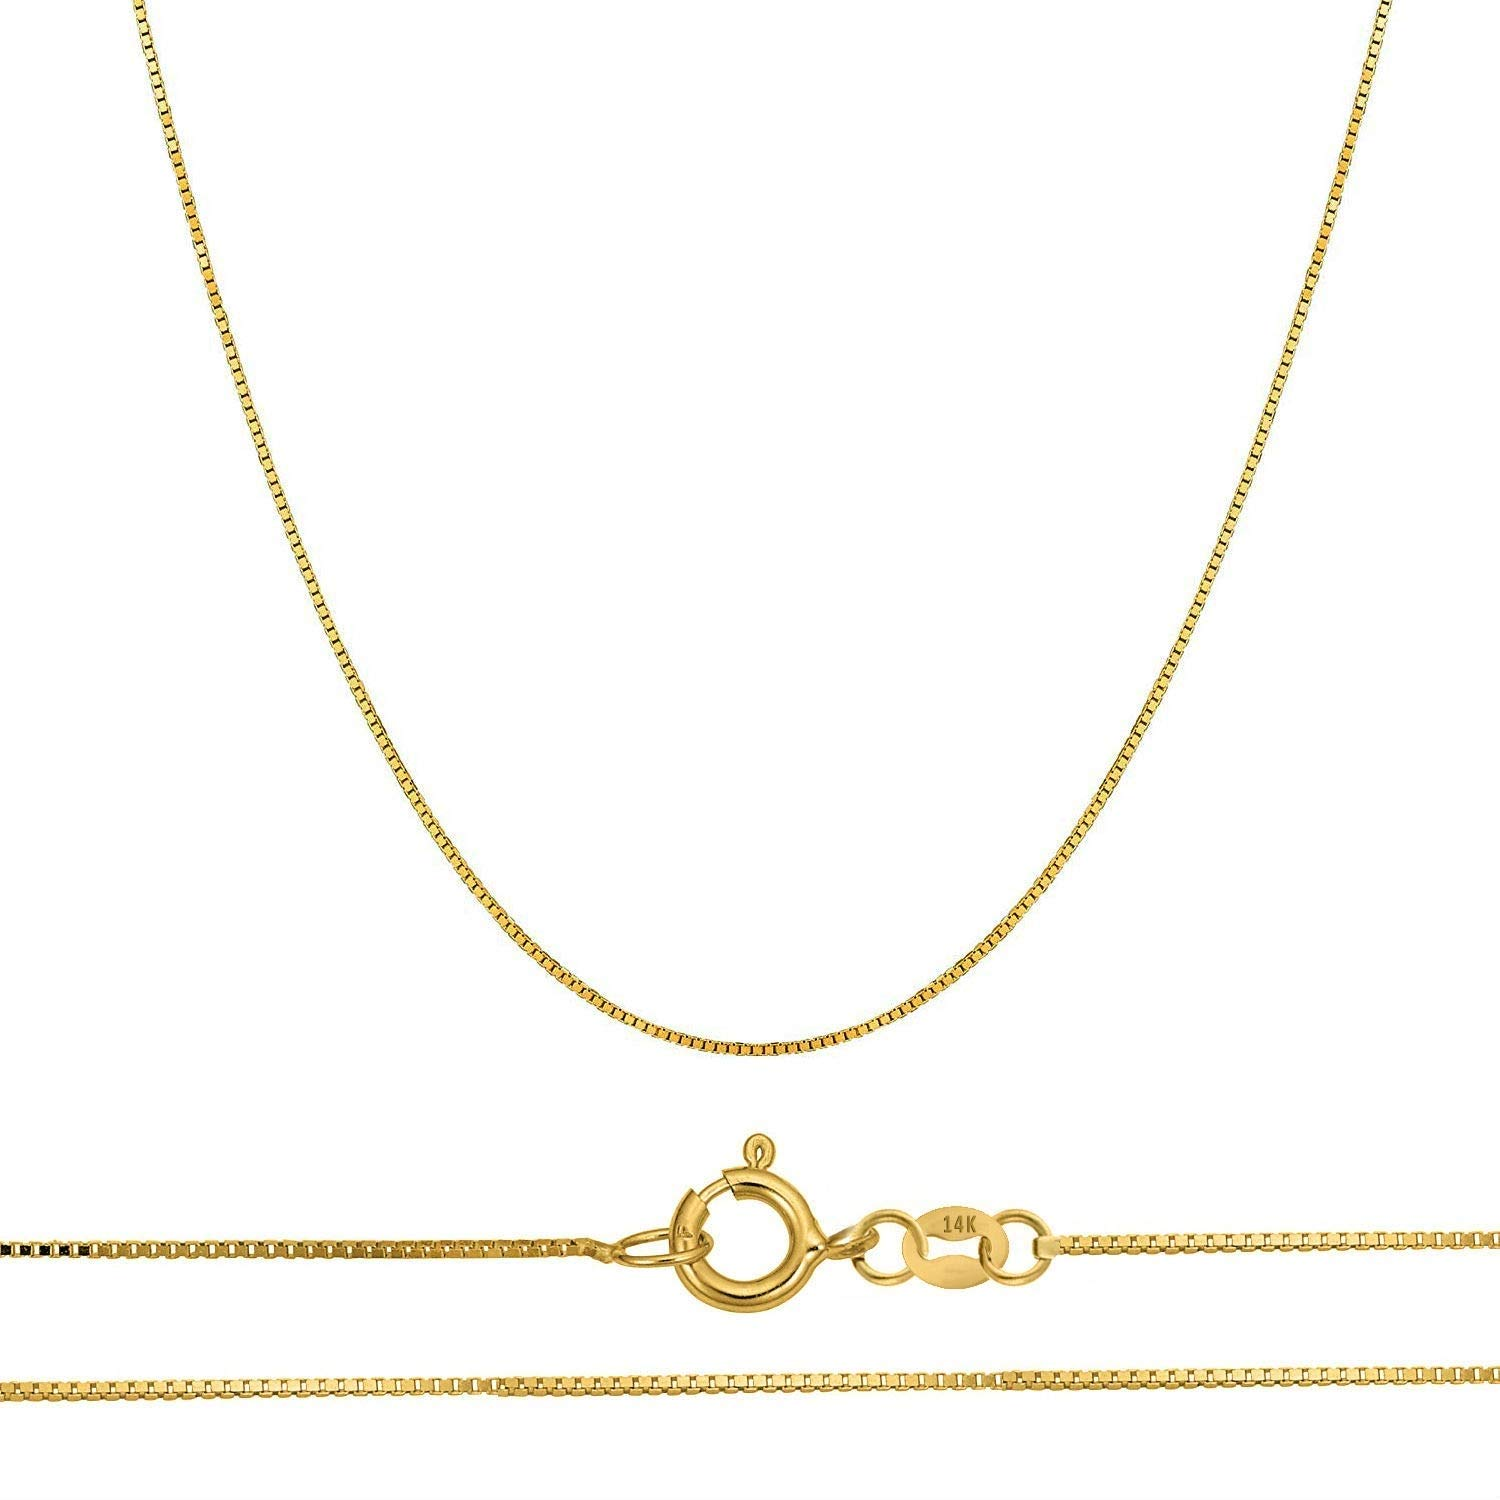 Becca Code 14k Yellow Gold .5MM Solid Box Chain Necklace 18'' by Becca Code (Image #2)